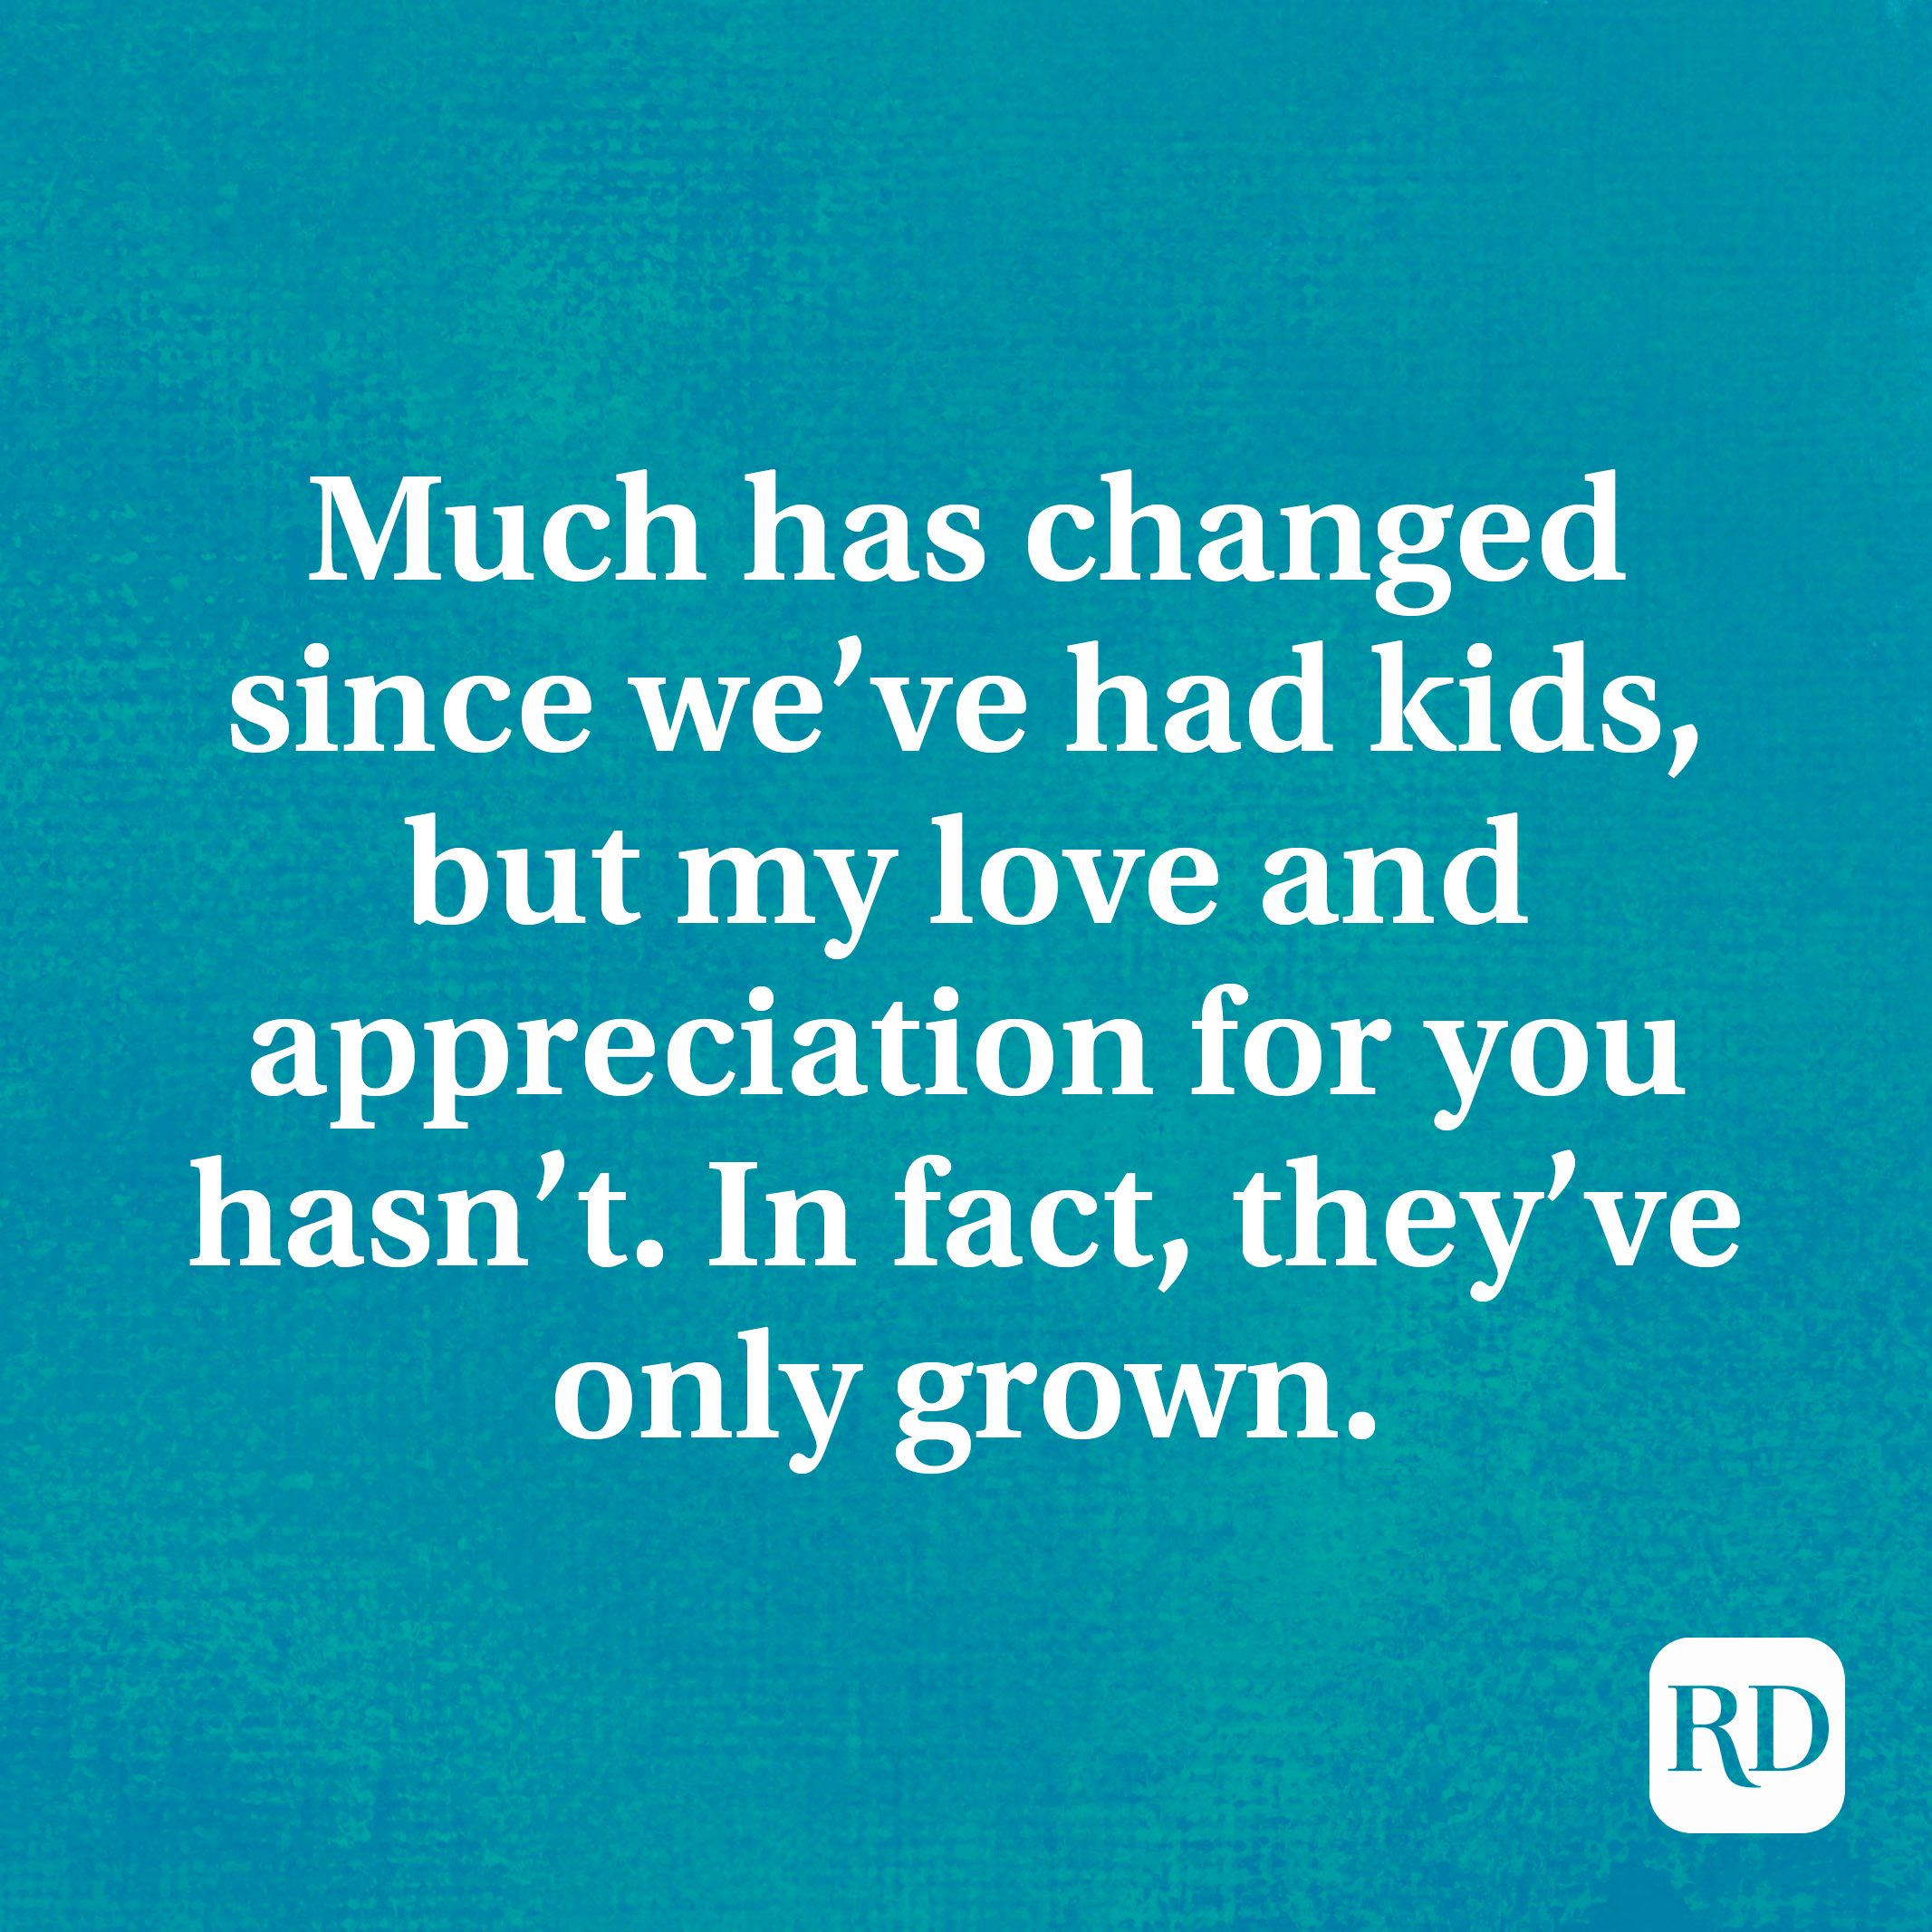 Much has changed since we've had kids, but my love and appreciation for you hasn't. In fact, they've only grown.